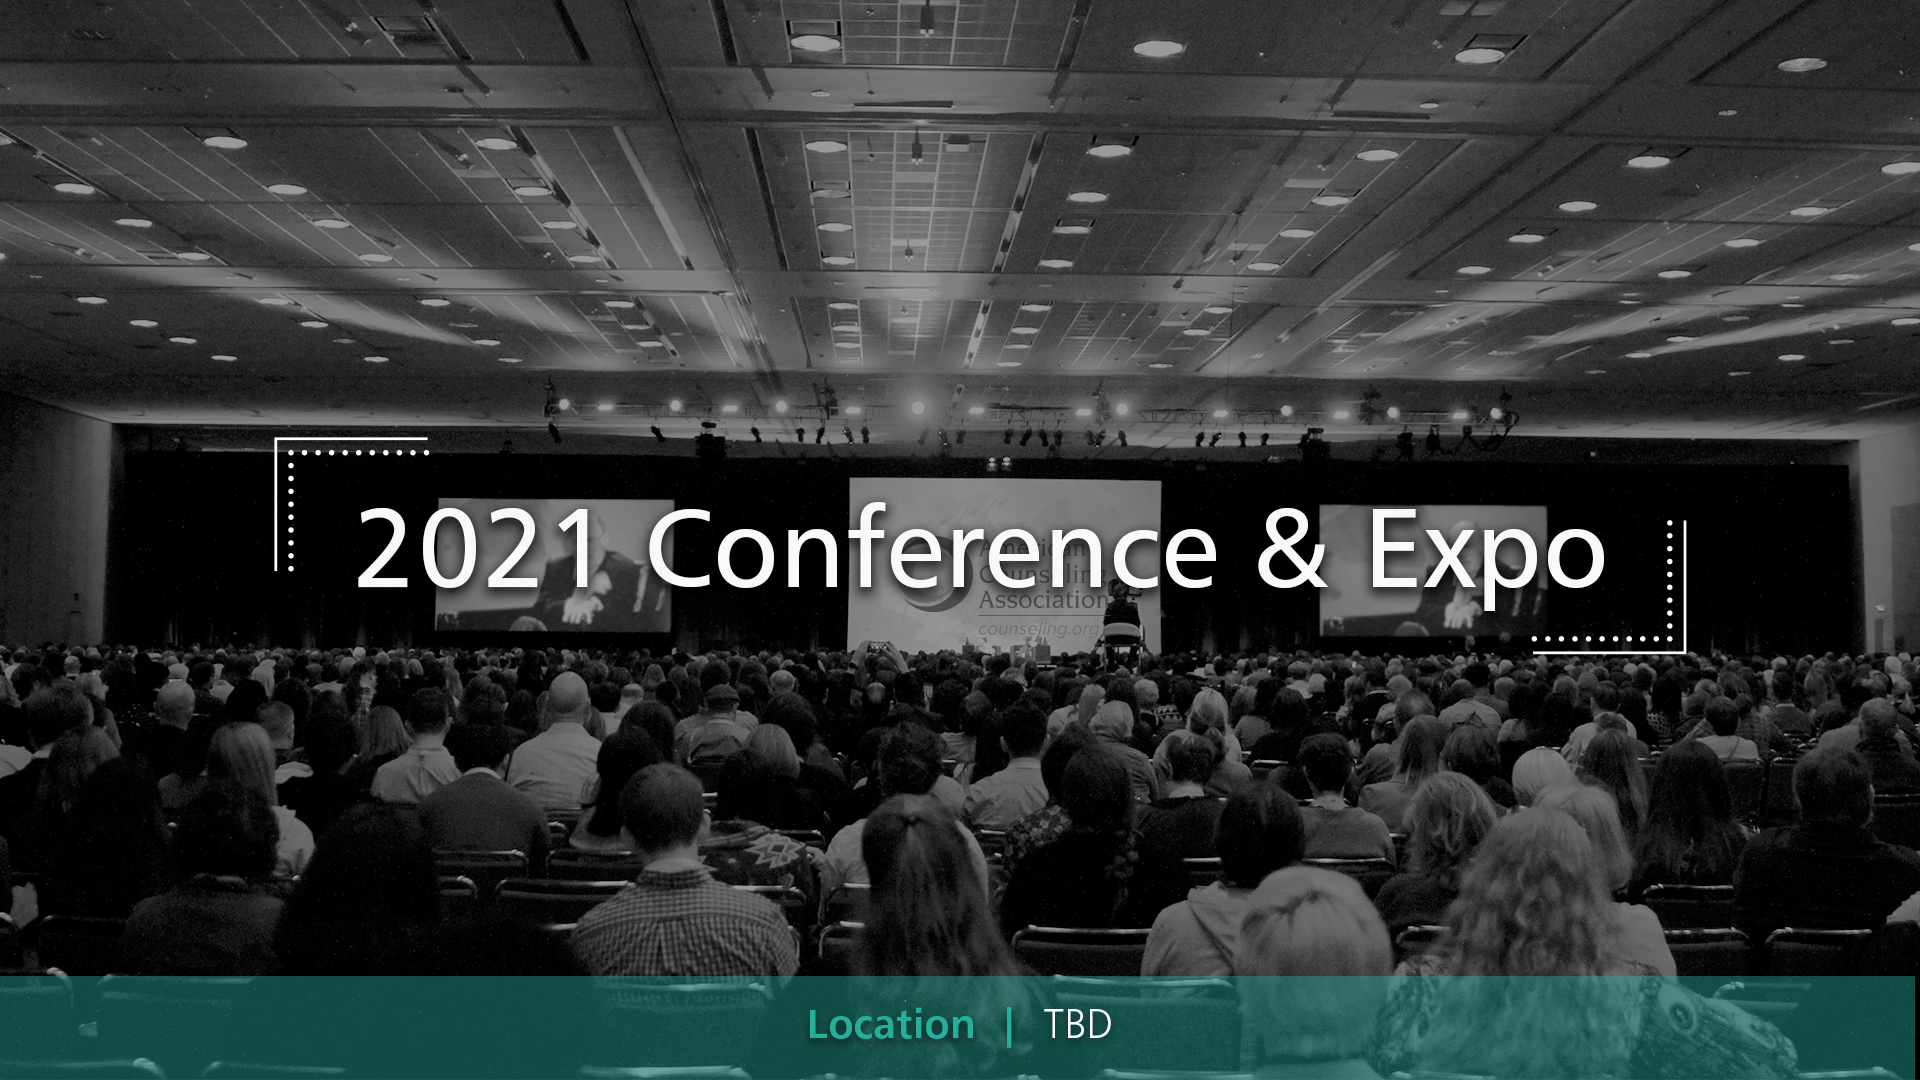 2021 Conference and Expo